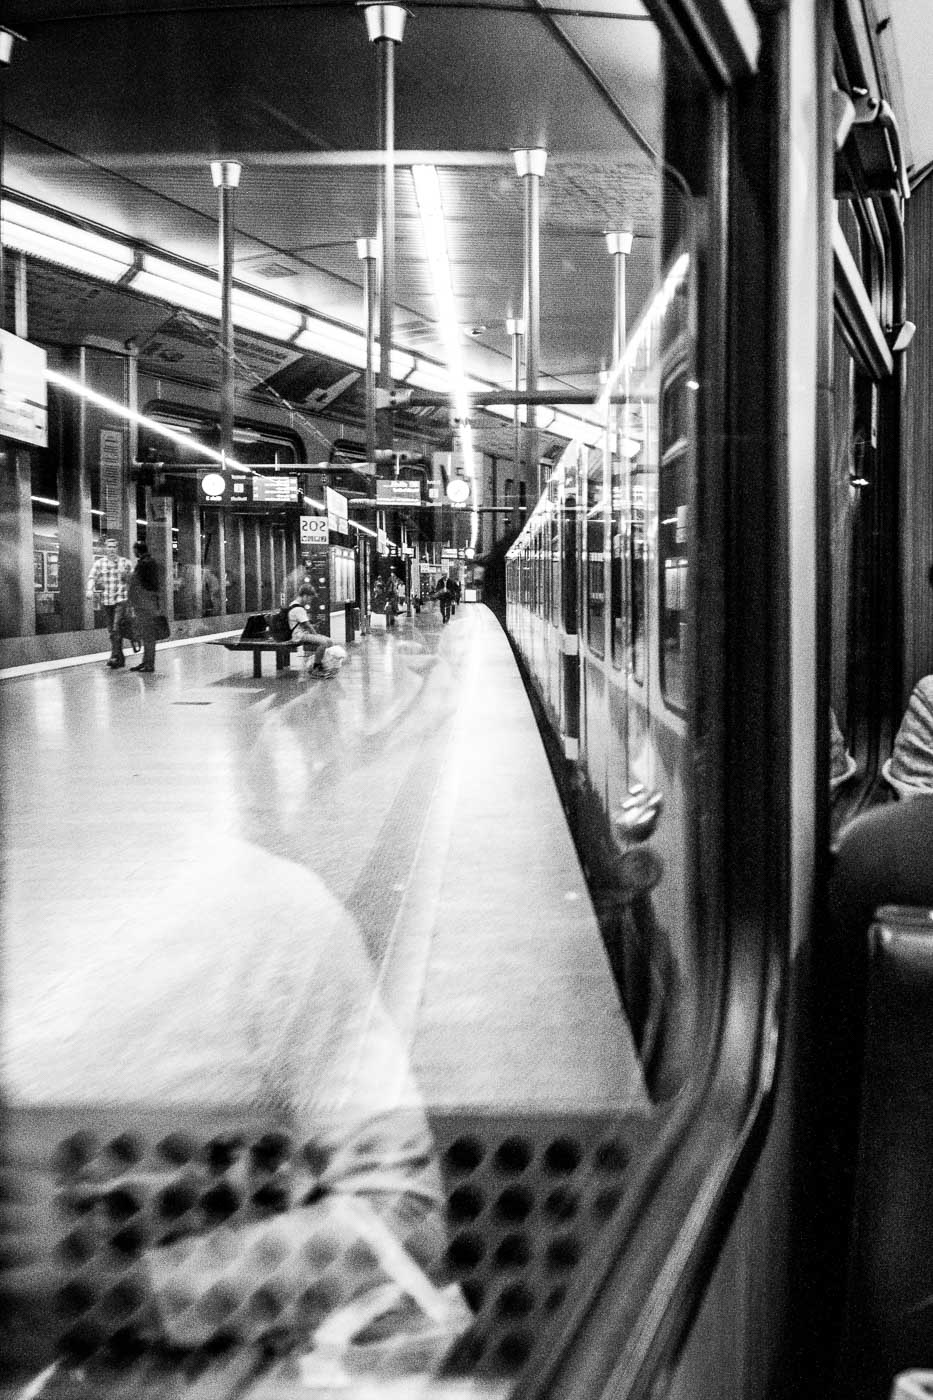 In my last work trip I had to commute on the subway across Munich in Germany. I noticed that each station had an angled mirror at the end of each platform that reflected the platform onto the train window. 7 stops worth of trying timing and settings led to this image - there's always time for photography!